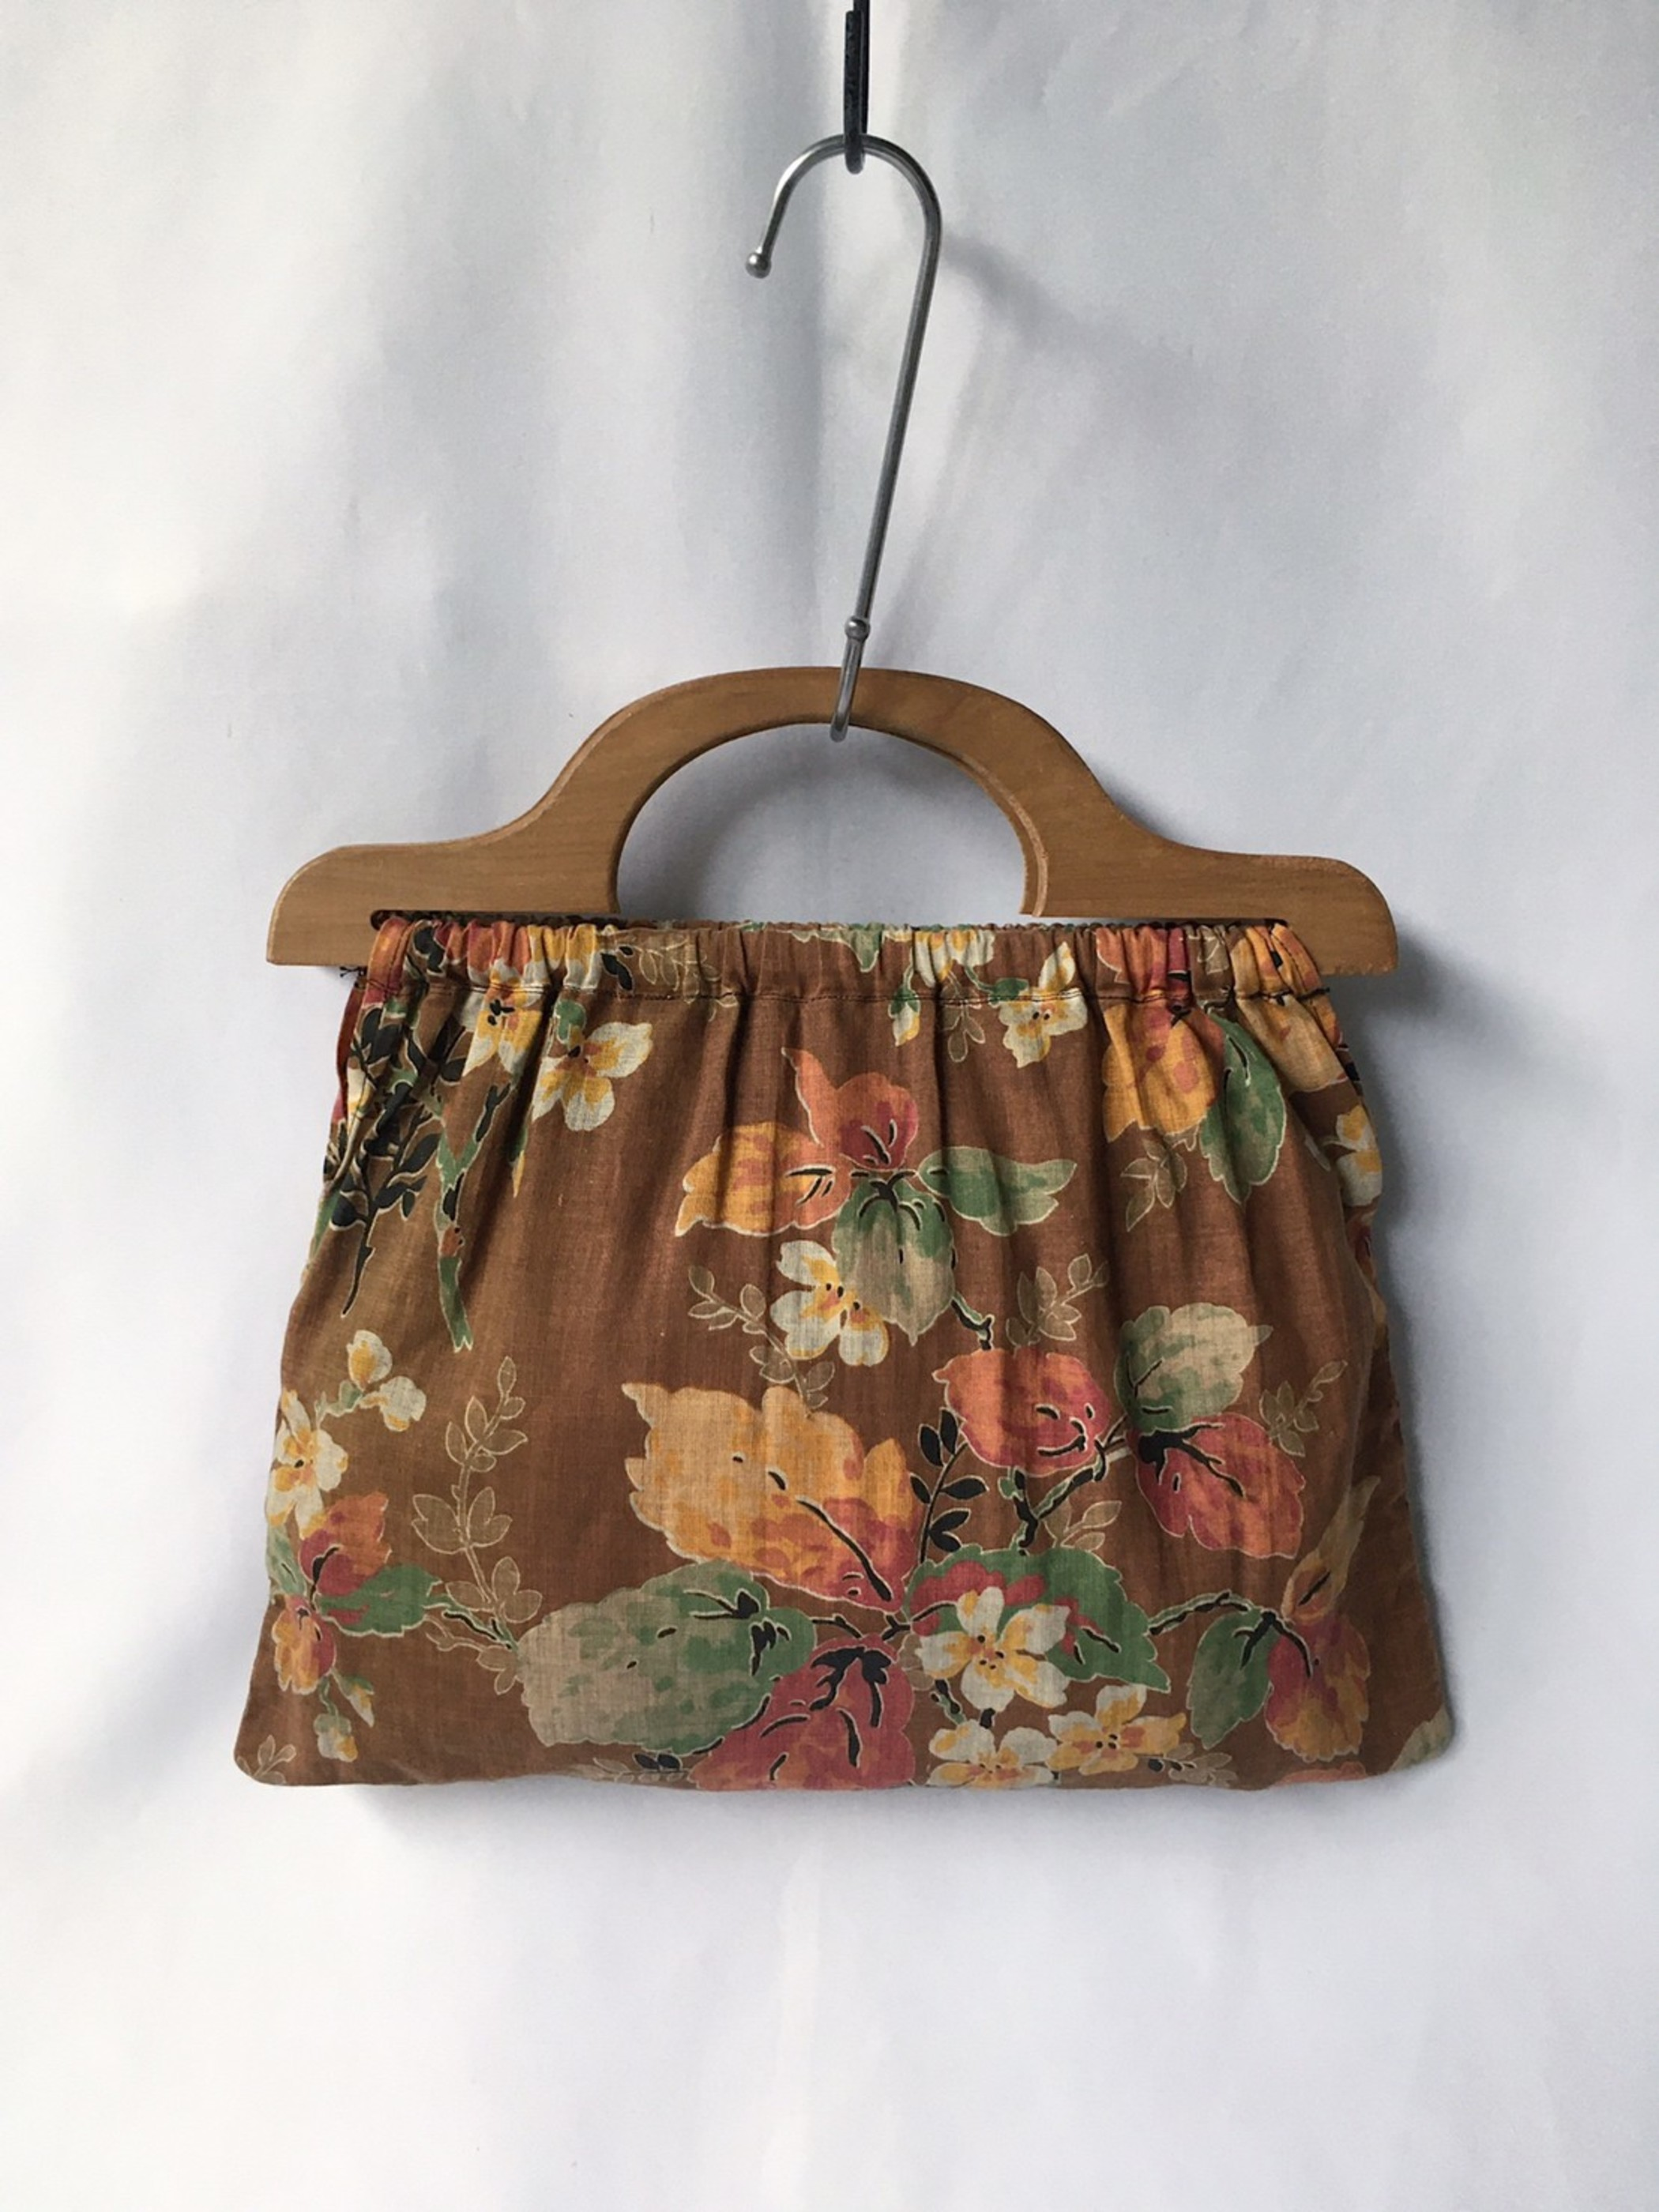 wood handle bag 60s